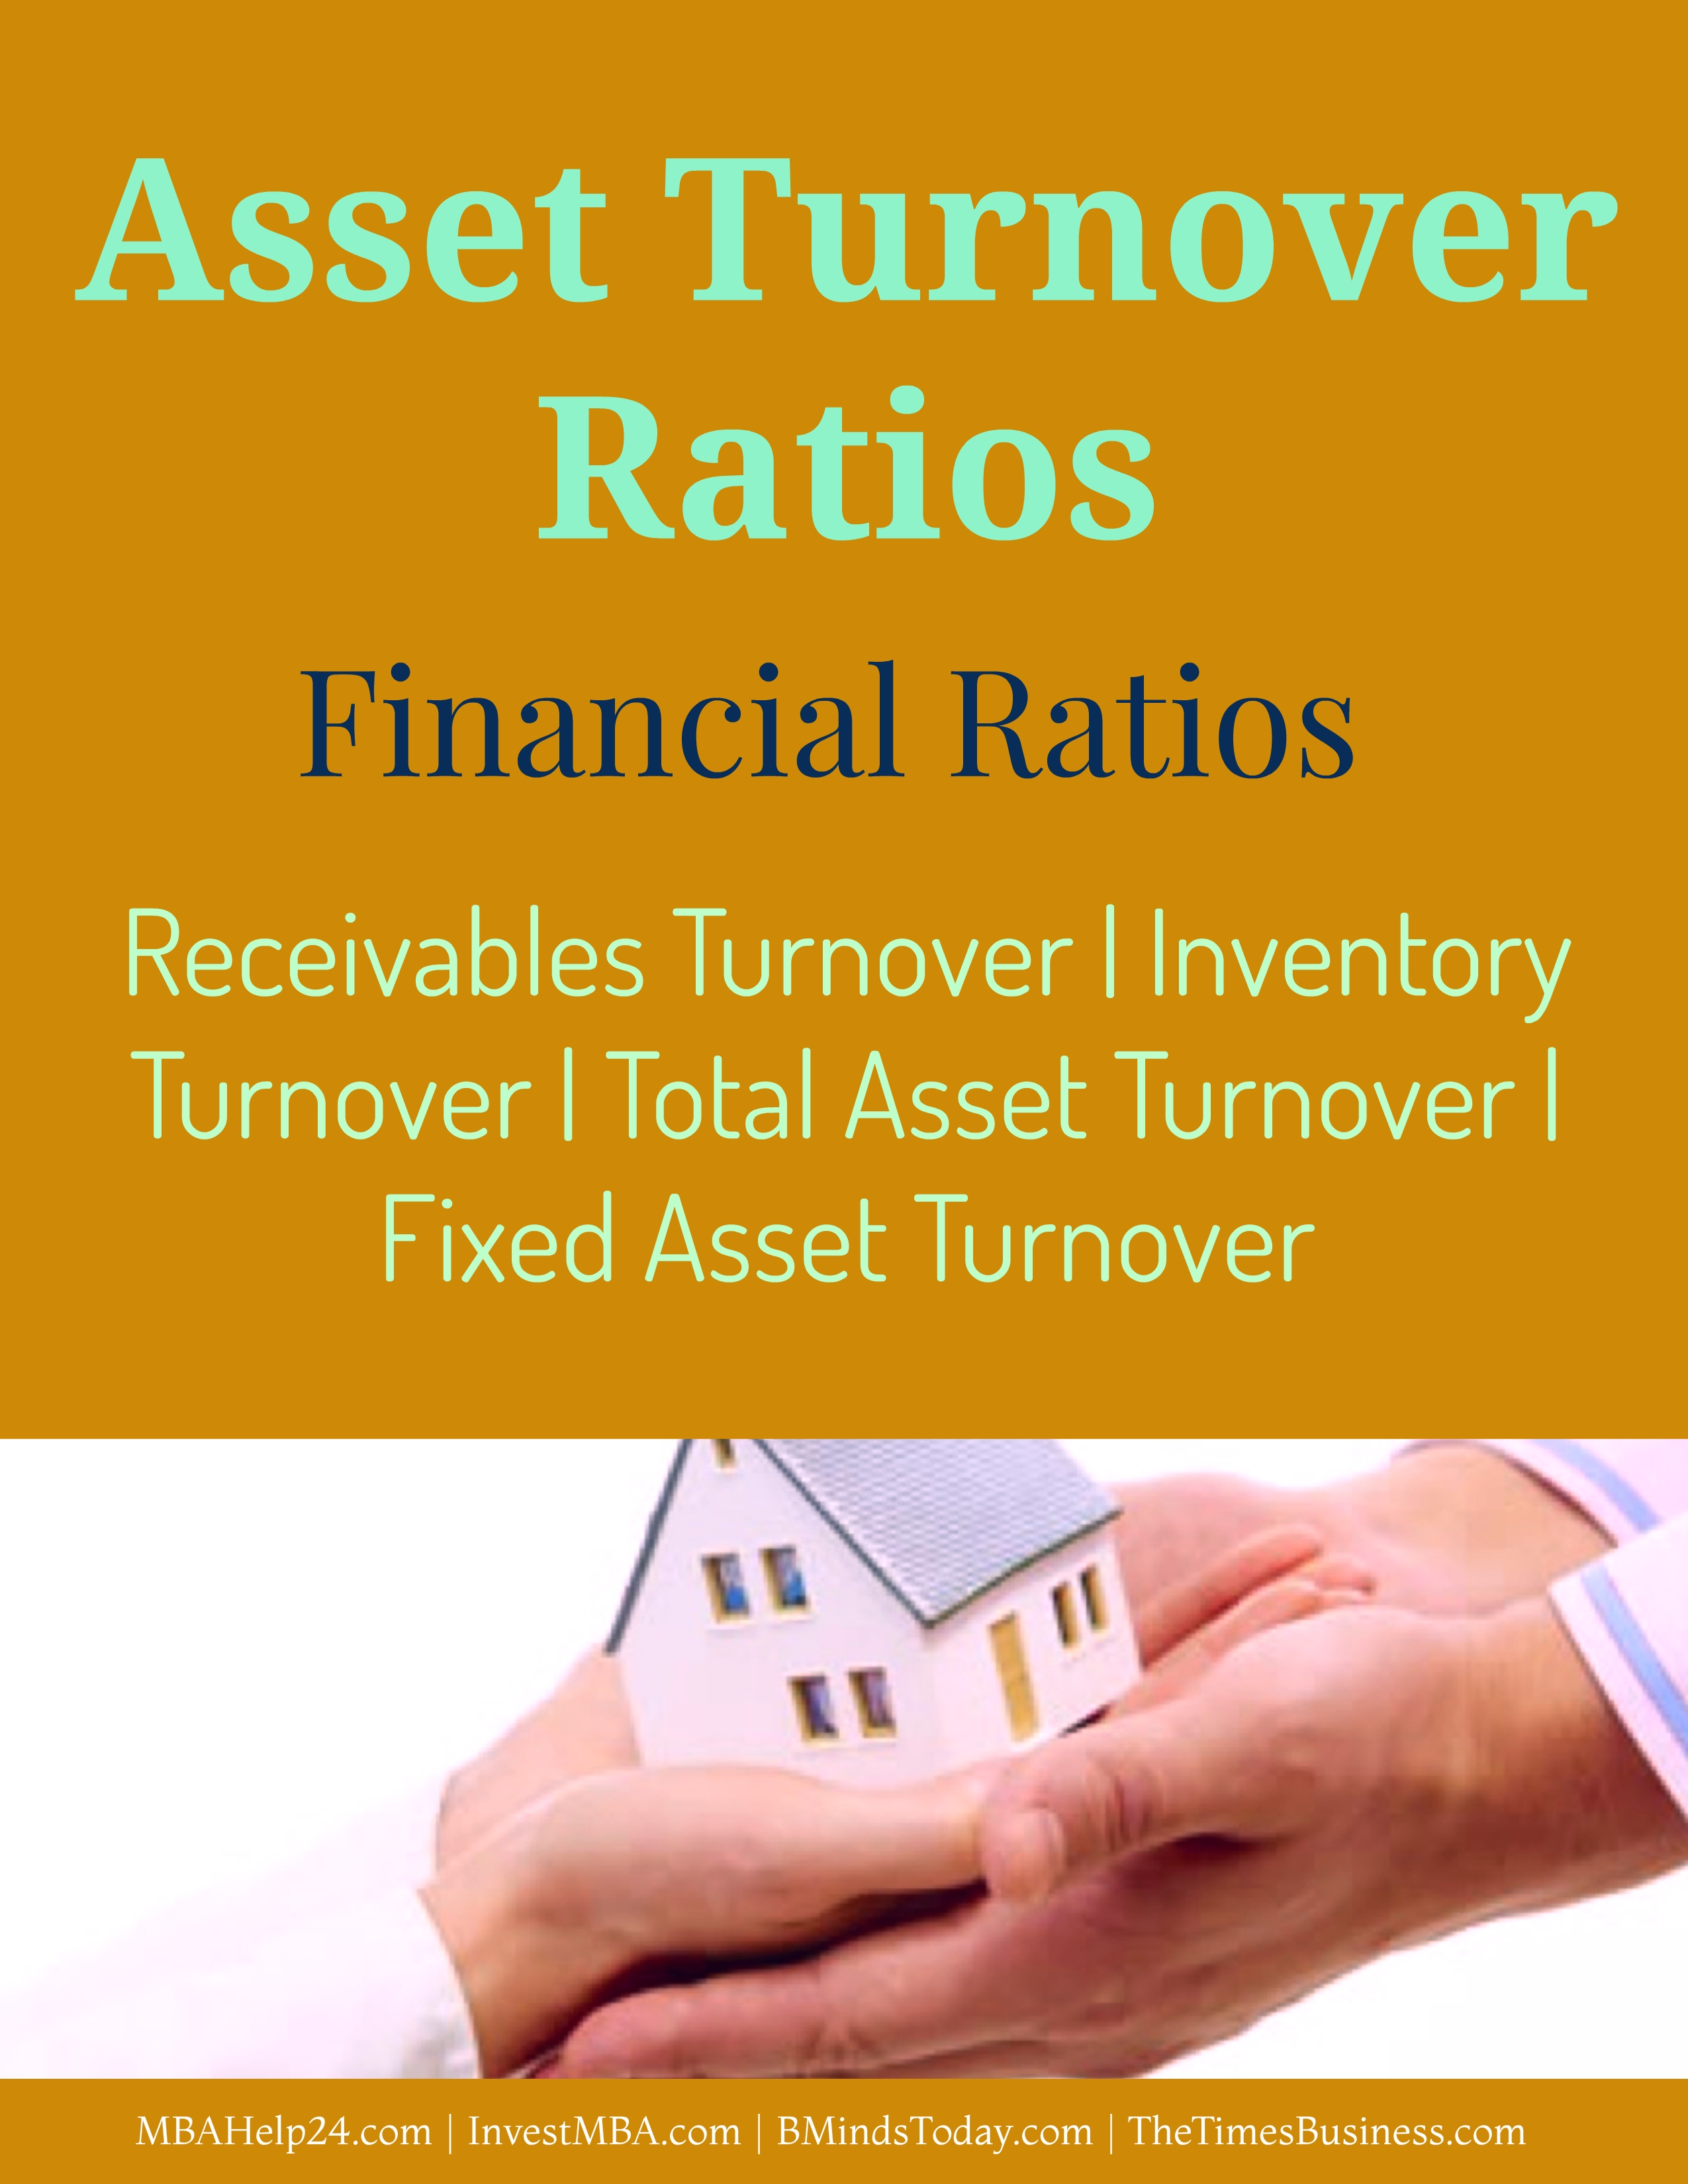 Asset Turnover Ratios- Receivables, Inventory, Total Asset and Fixed Asset Asset Turnover Ratios Asset Turnover Ratios | Receivables | Inventory | Total Asset | Fixed Asset Asset Turnover Ratios Receivables Inventory Total Asset and Fixed Asset asset turnover ratios | receivables | inventory | total asset Asset Turnover Ratios | Receivables | Inventory | Total Asset Asset Turnover Ratios Receivables Inventory Total Asset and Fixed Asset